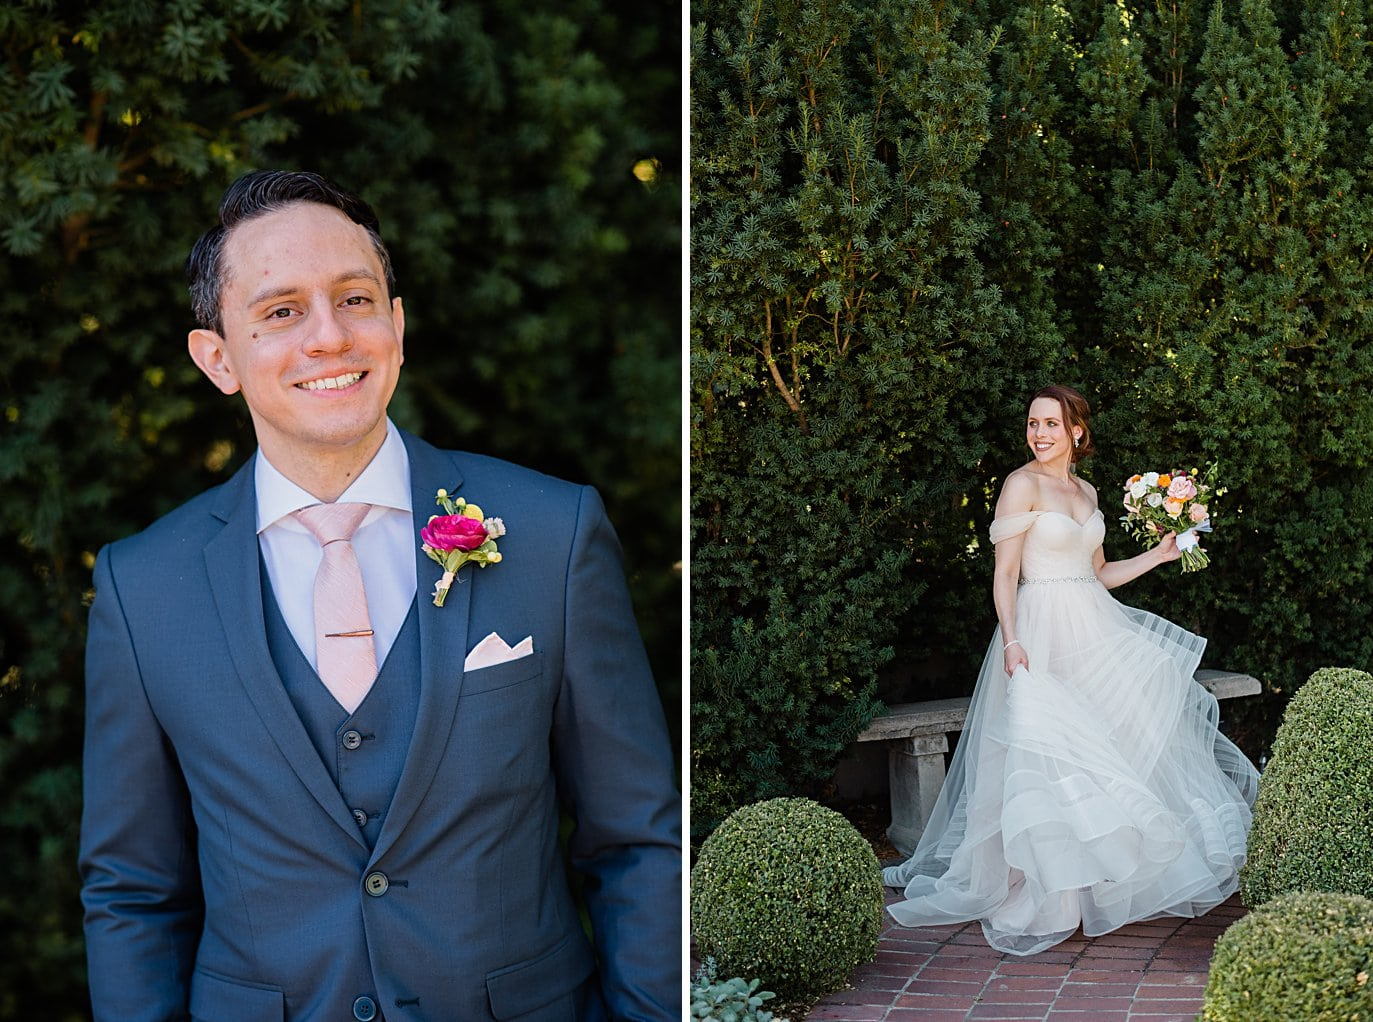 bride and groom individual portraits before the ceremony at Denver Botanic Gardens wedding by Denver wedding photographer Jennie Crate